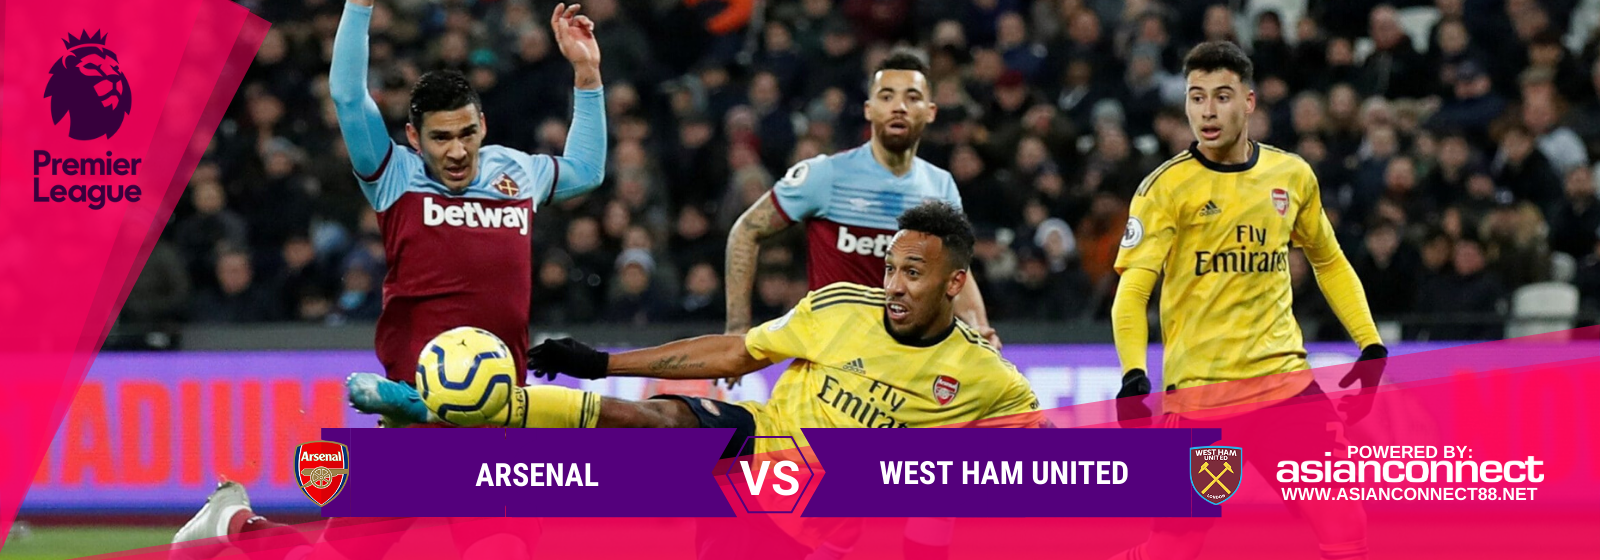 Asianconnect: Arsenal vs West Ham Utd Odds for March 07, 2020